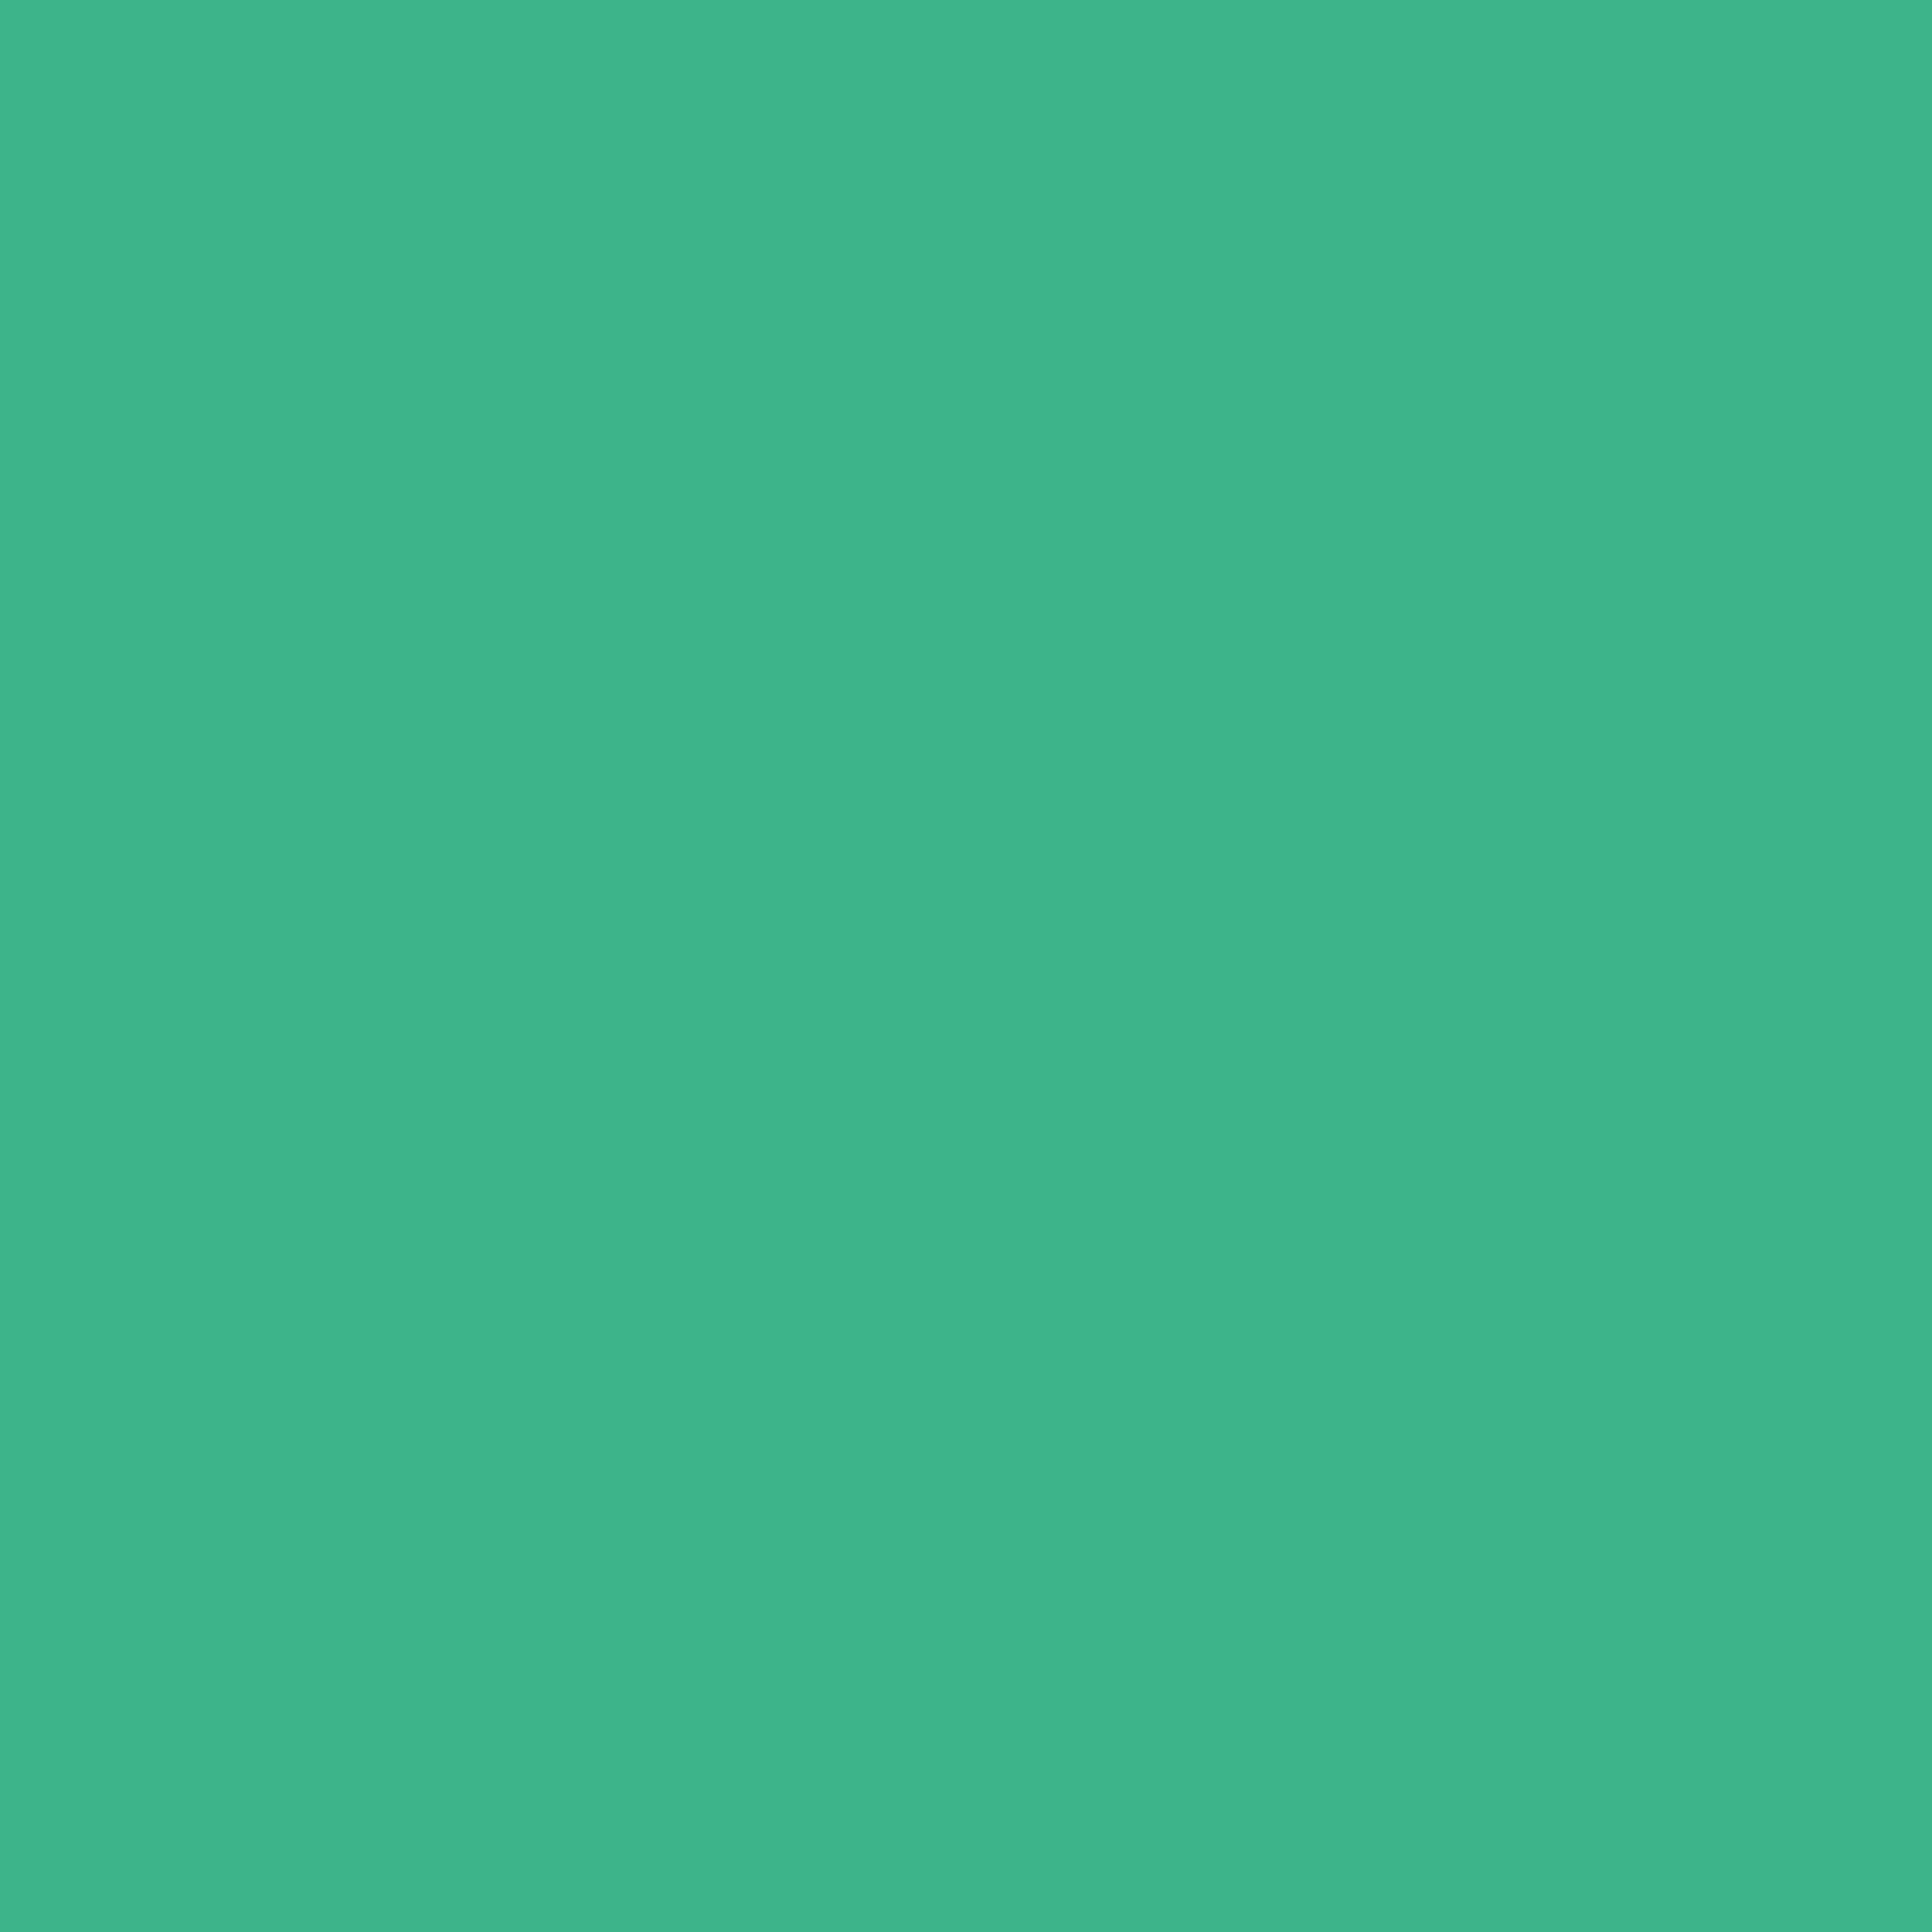 2048x2048 Mint Solid Color Background